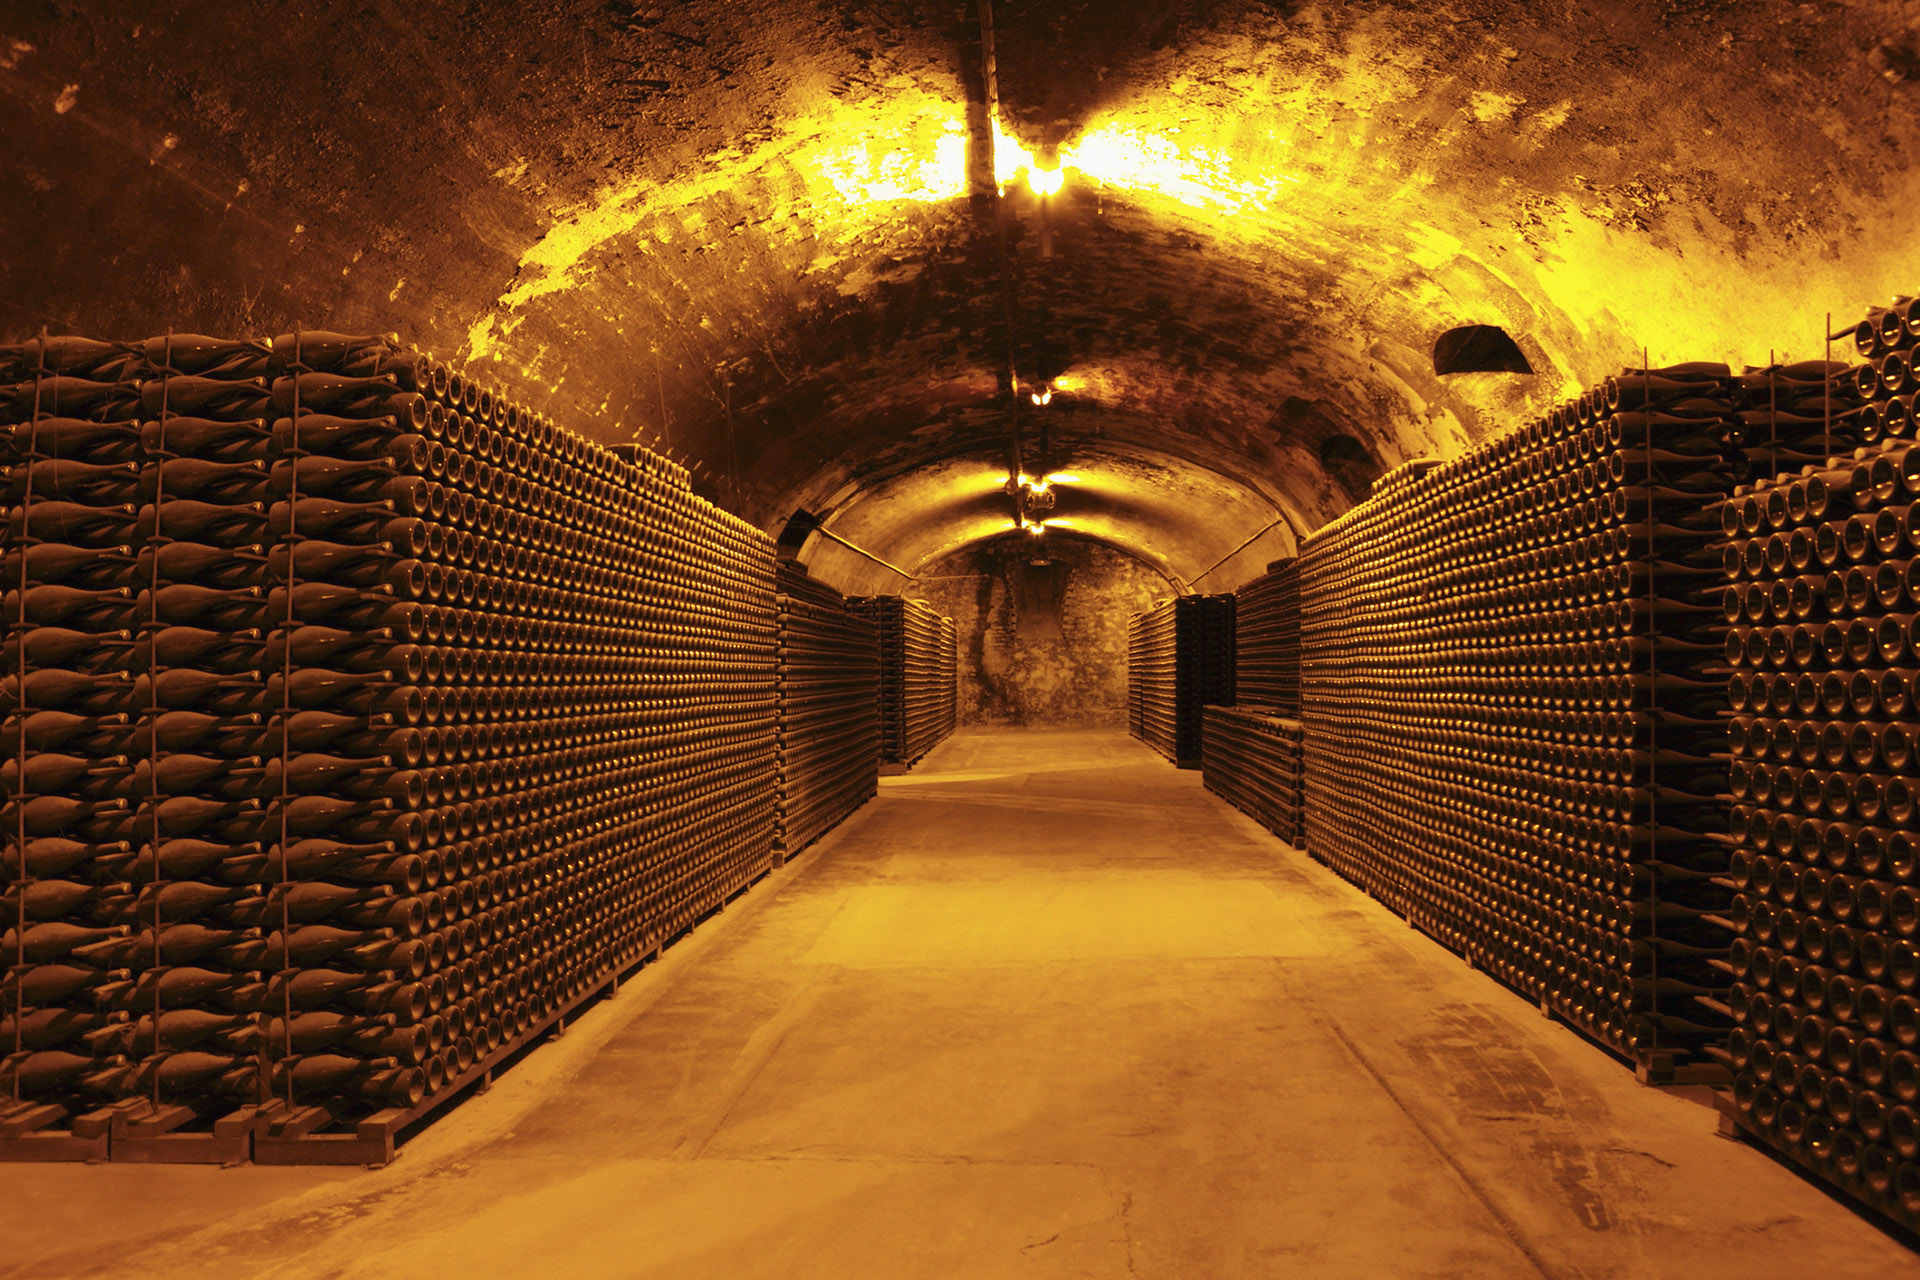 Gigantic cellar filled with wine bottles aging